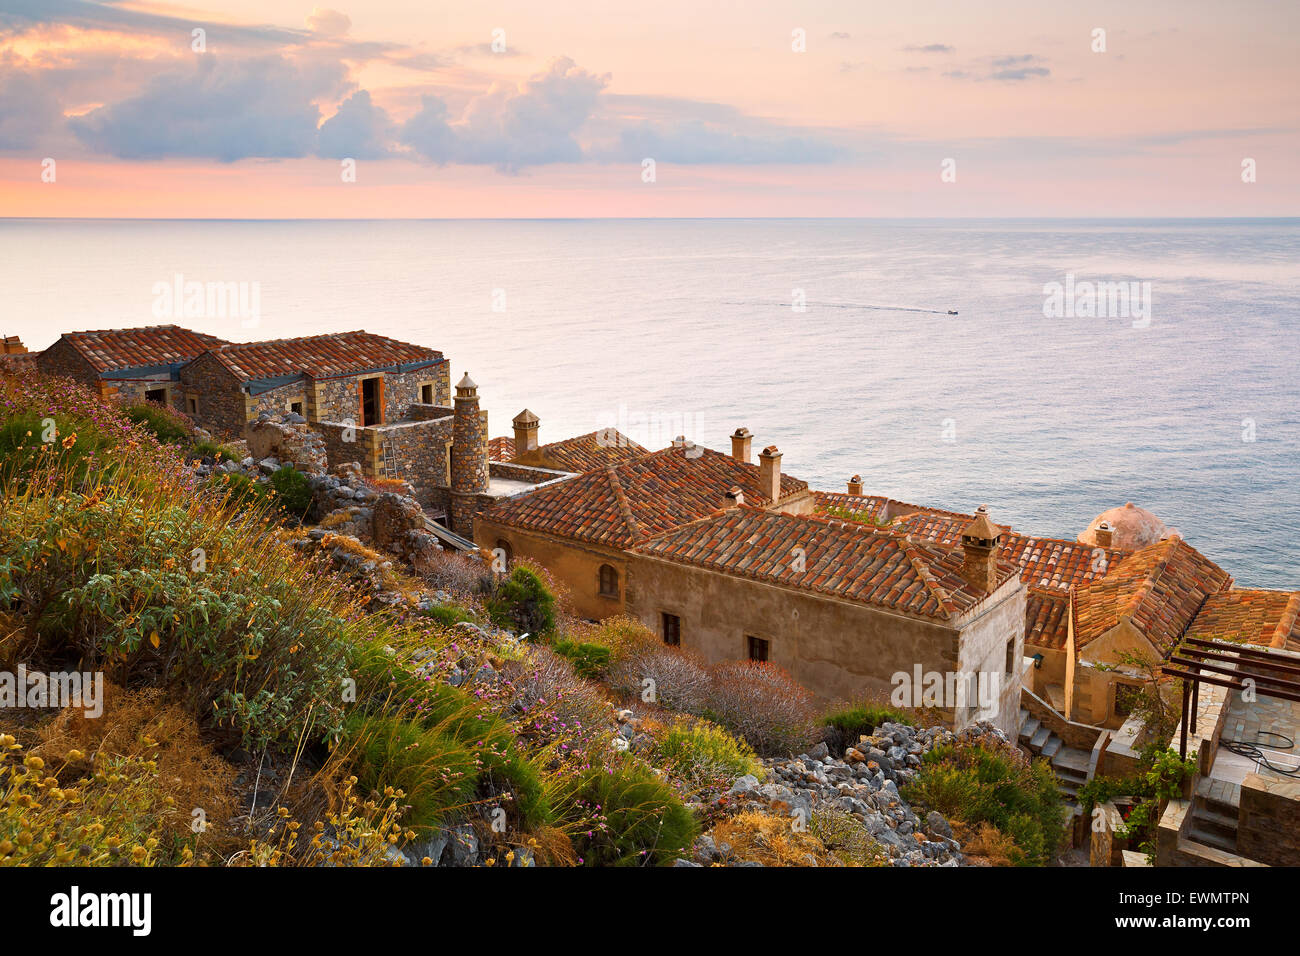 Monemvasia village in Peloponnese, Greece. - Stock Image